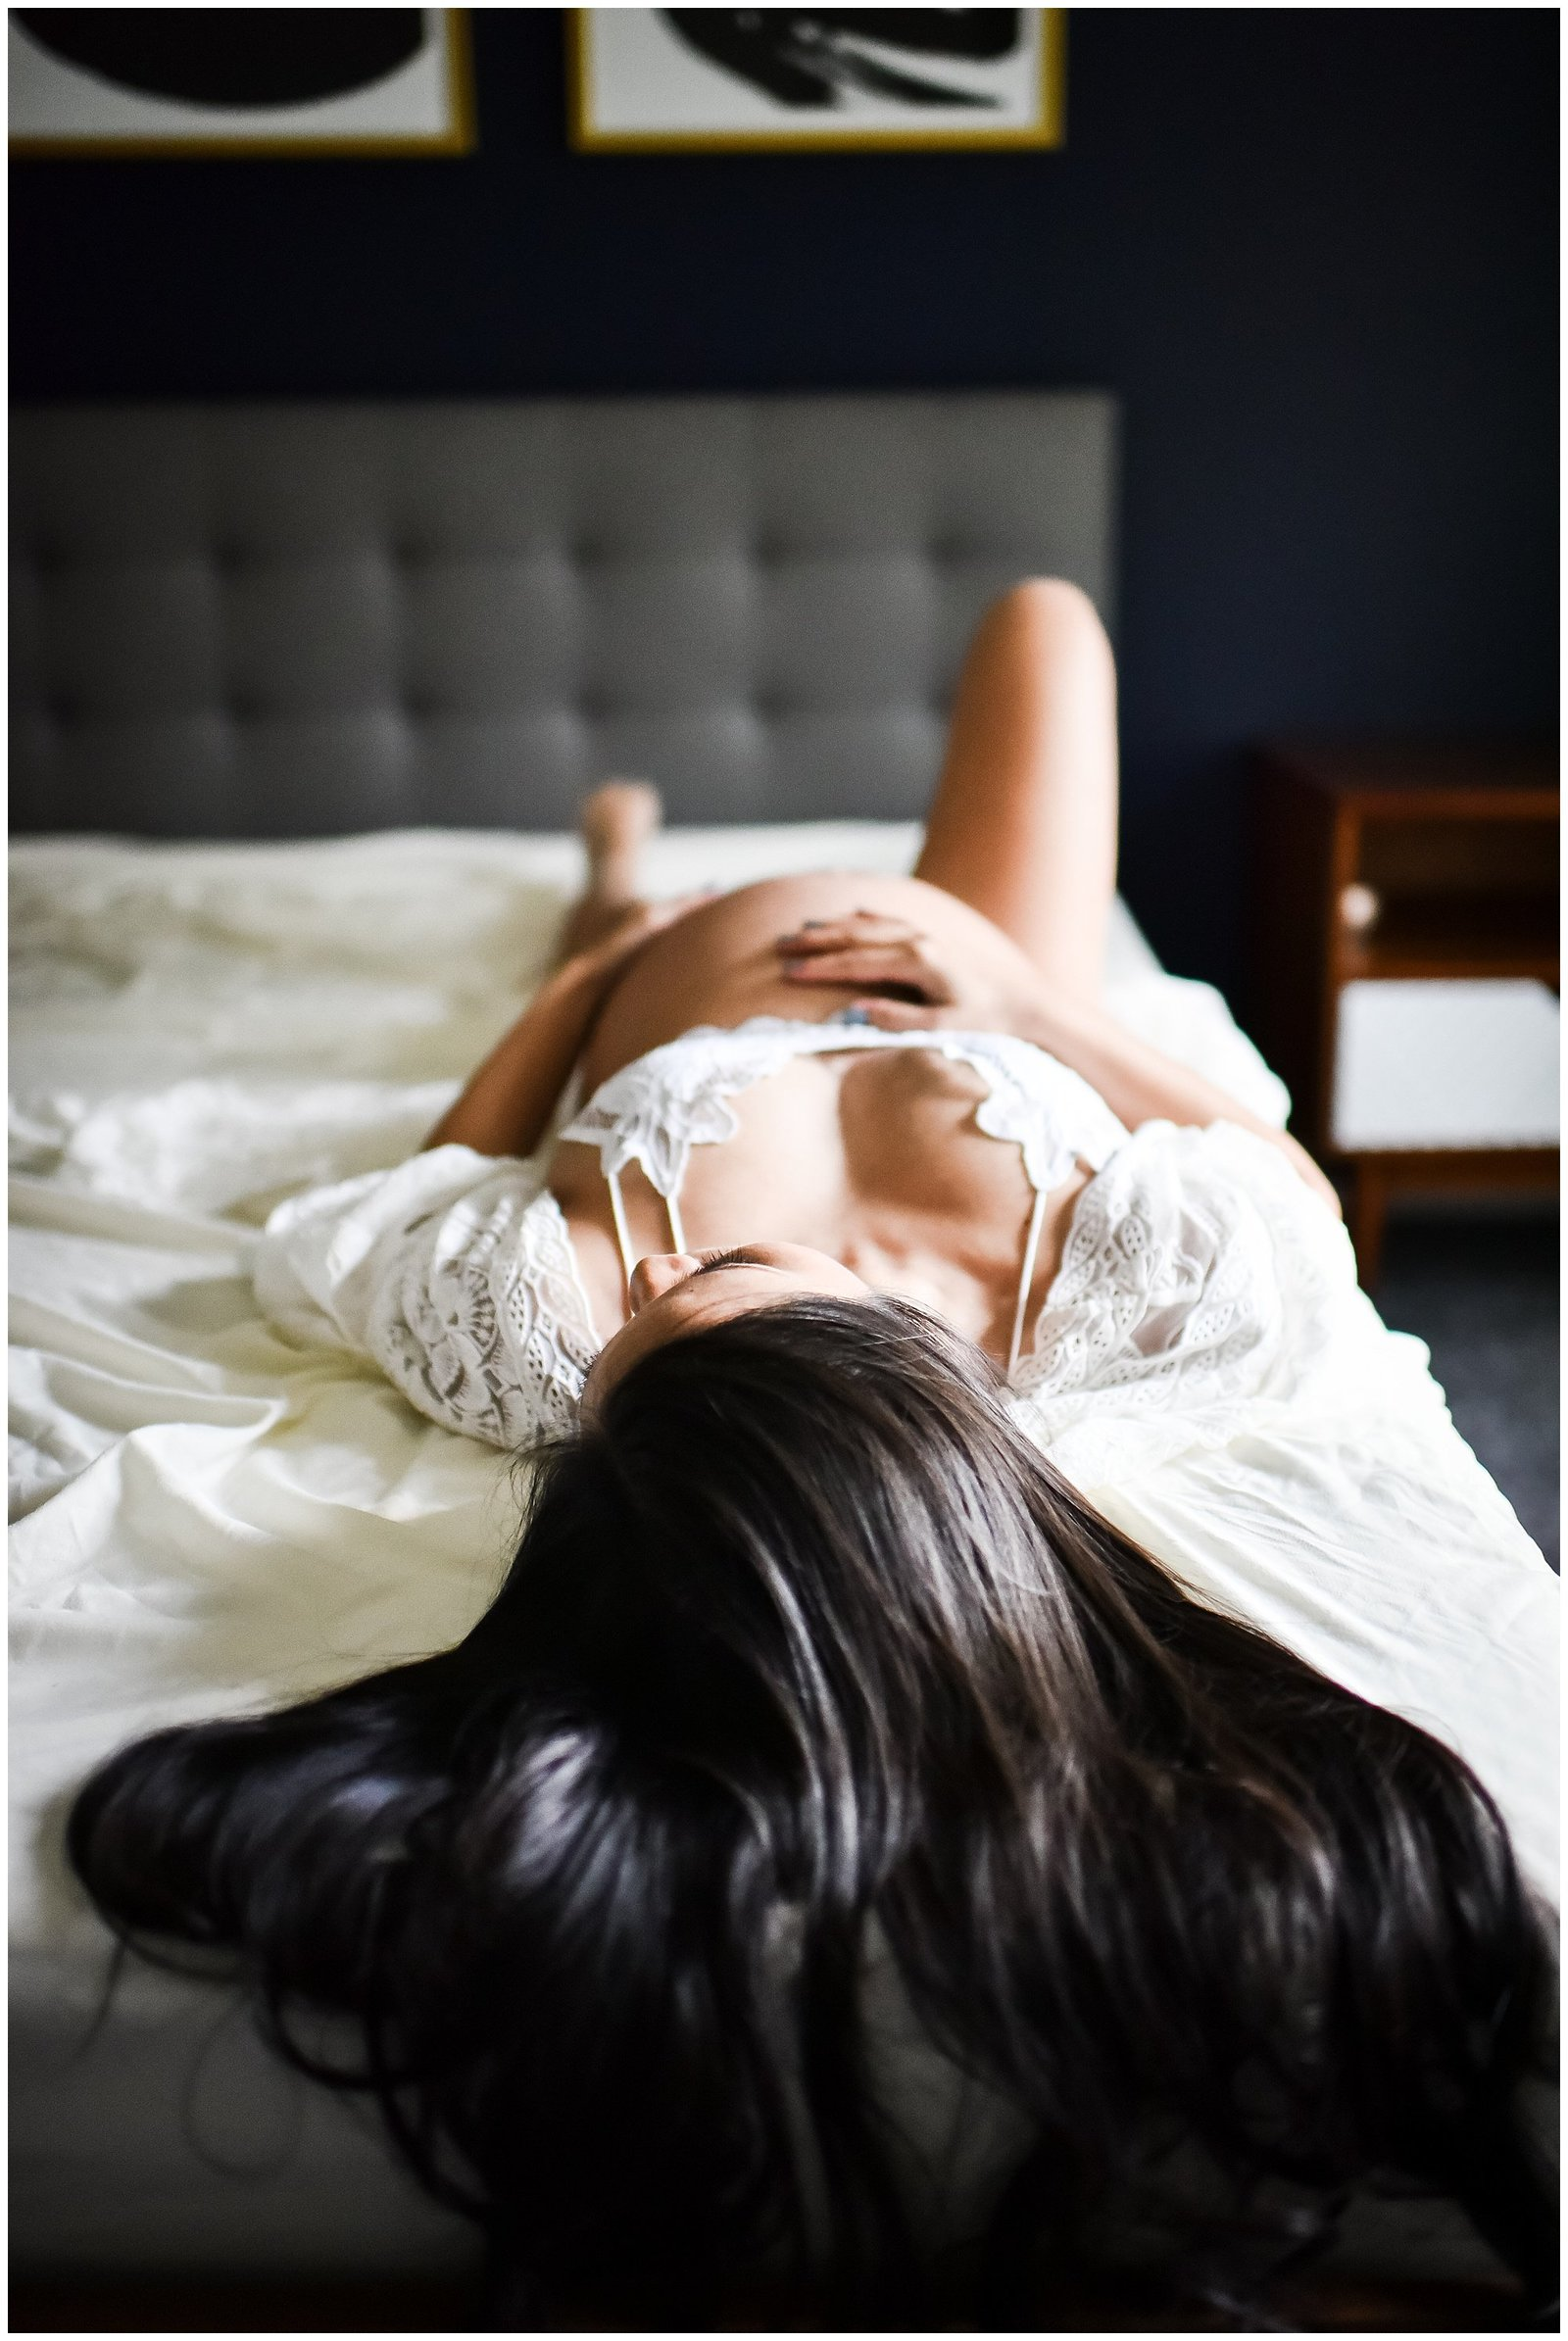 Pregnant woman laying on bed holding belly wearing lace kimono robe Emily Ann Photography Seattle Photographer.